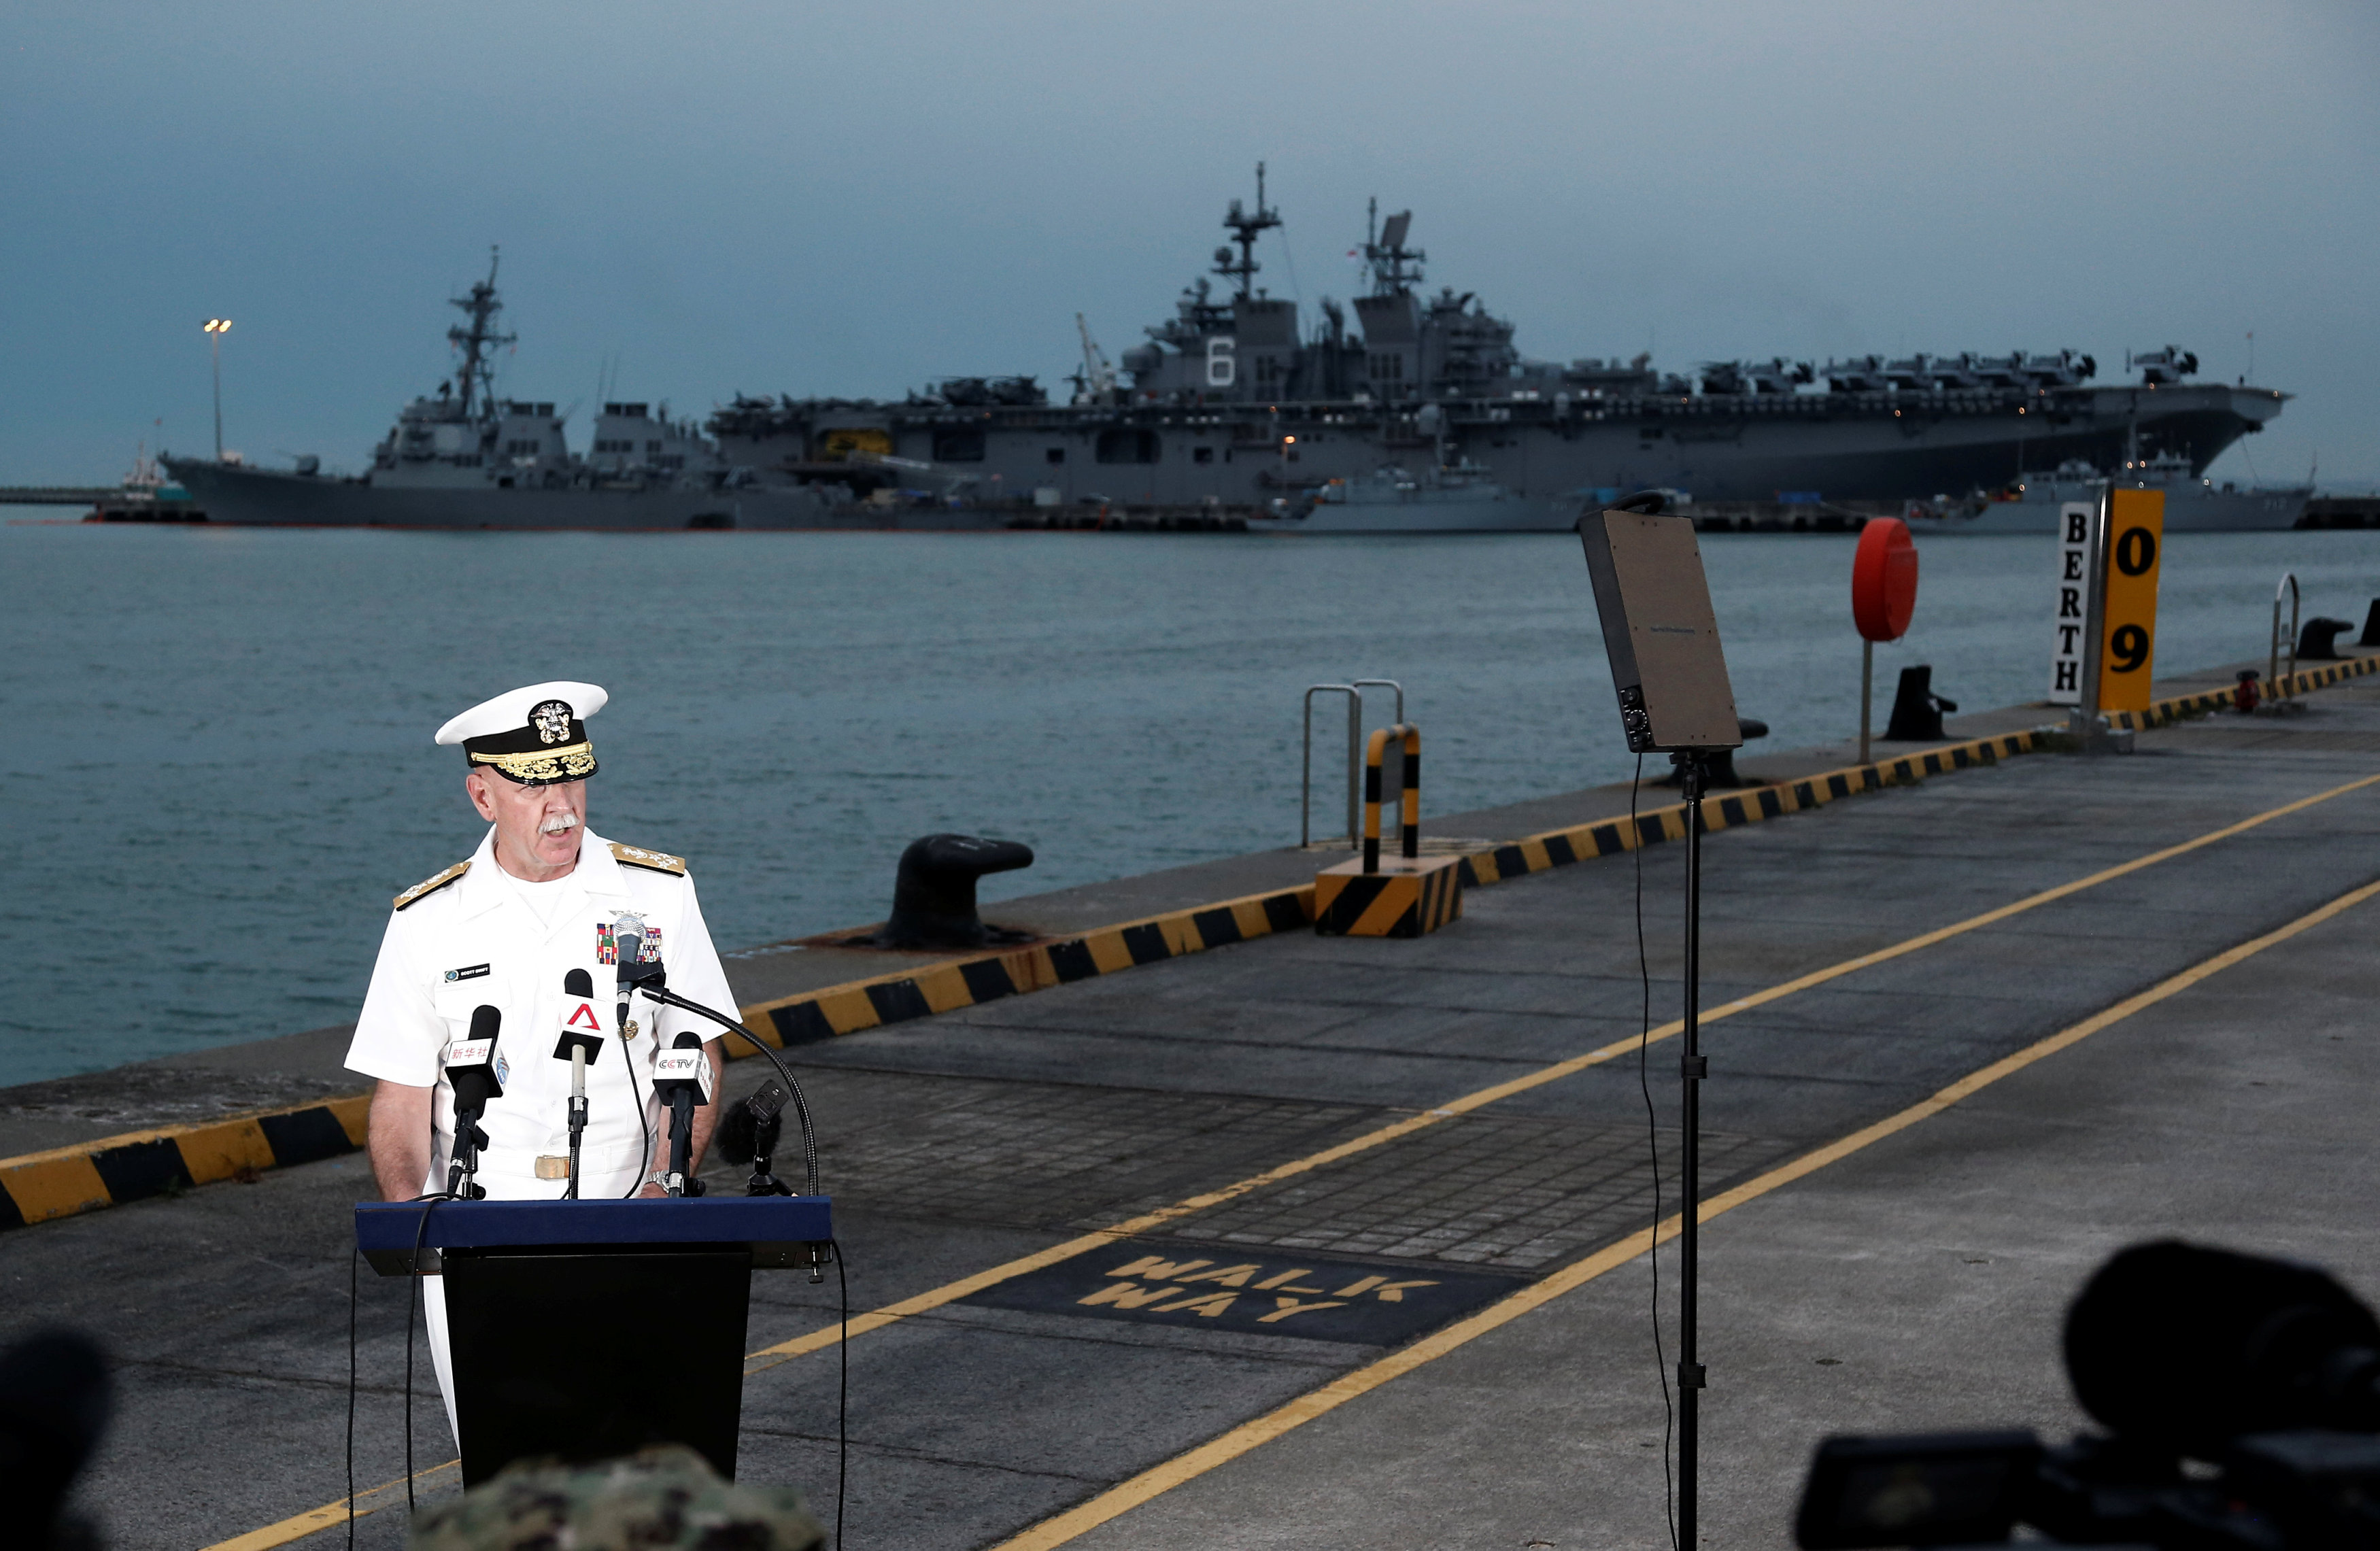 Admiral Scott Swift, Commander of the U.S. Pacific Fleet, speaks at a news conference near the damaged USS John McCain and the USS America at Changi Naval Base in Singapore on August 22, 2017. (REUTERS/Calvin Wong)